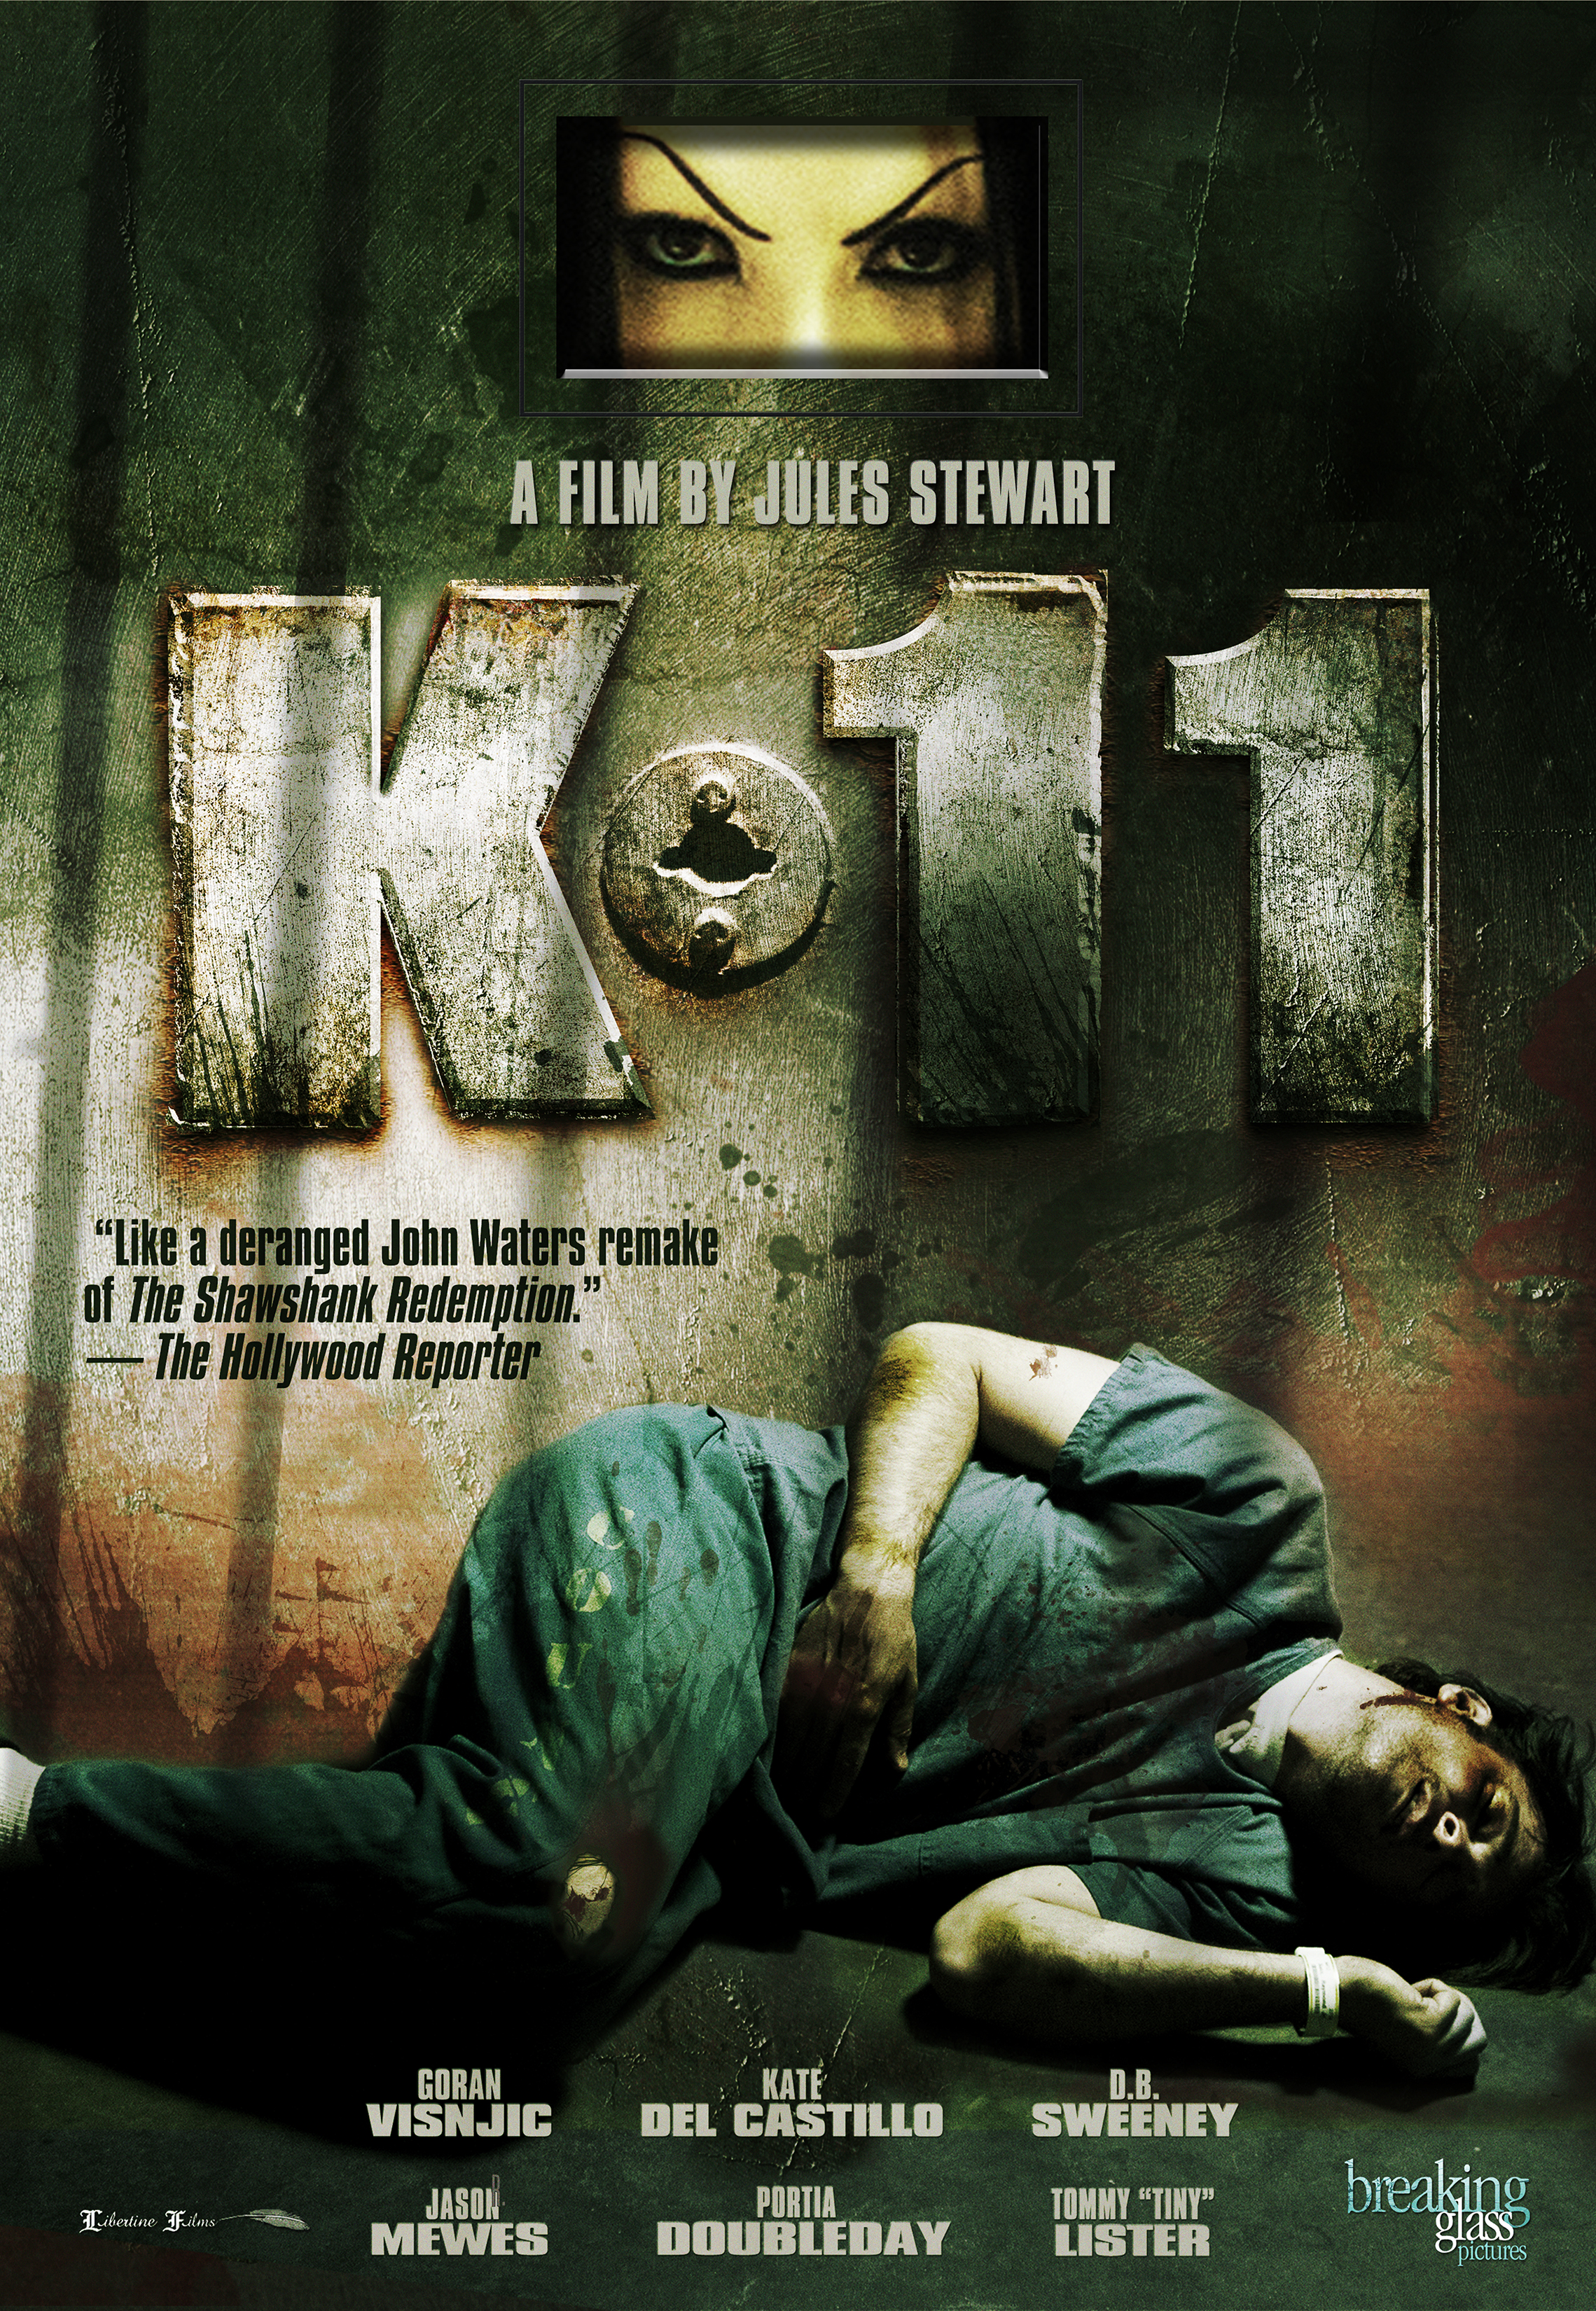 Watch K-11 Streaming Megashare free in HD | Leaked Movie: http://leakmovie.blogspot.dk/2013/03/watch-k-11-streaming-megashare-free-in.html